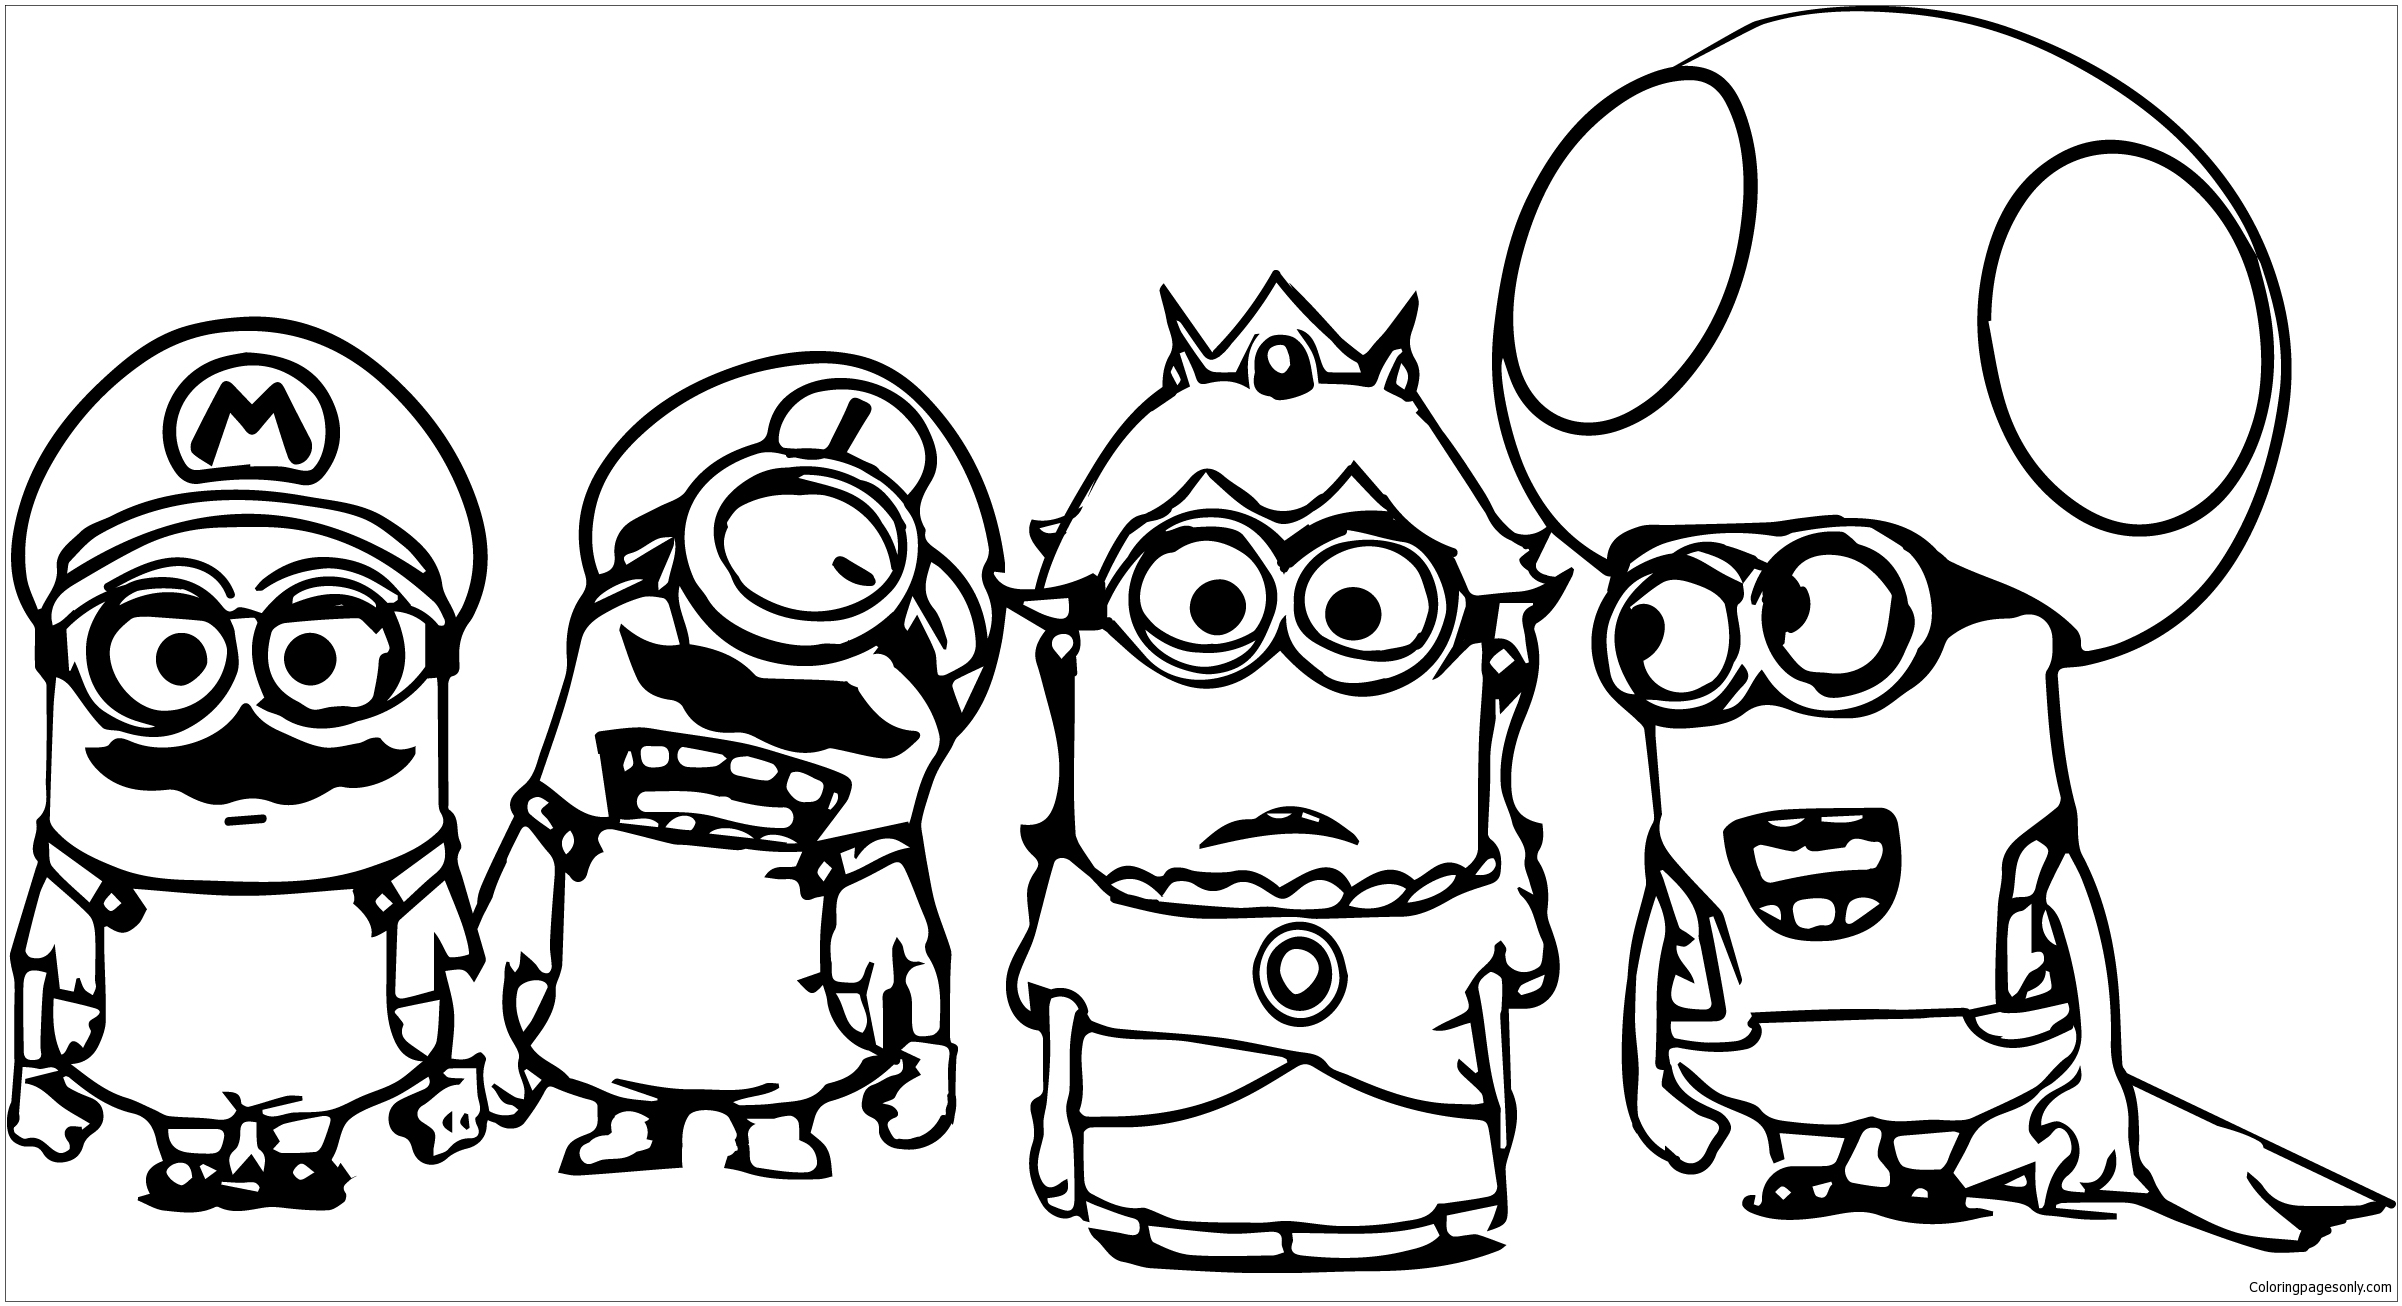 Super Mario Minions Coloring Page - Free Coloring Pages Online